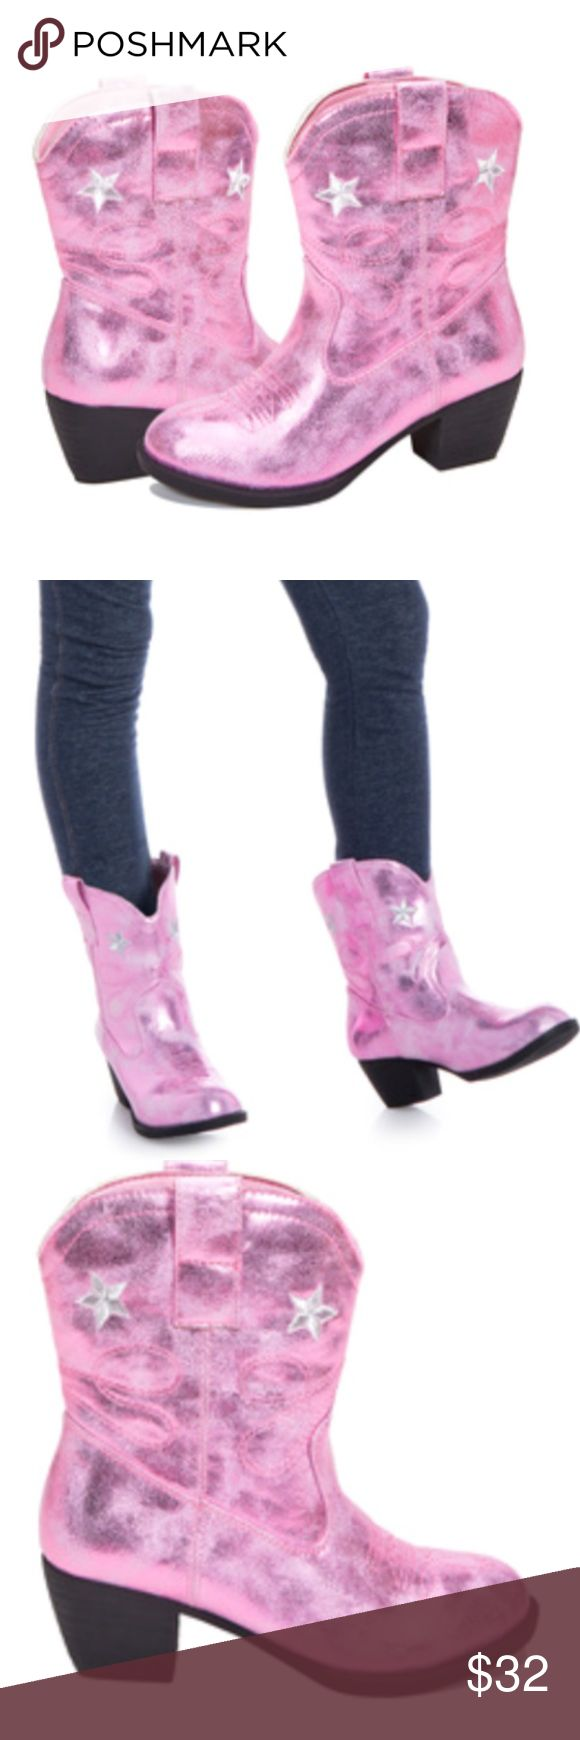 . Just in! Adorable Girls Cowgirl Boot For your little cowgirl. So sweet!  Get yours before your size sells out!  Silver star & stitching detail on these stylish metallic boots. Spot clean. Shoes Boots